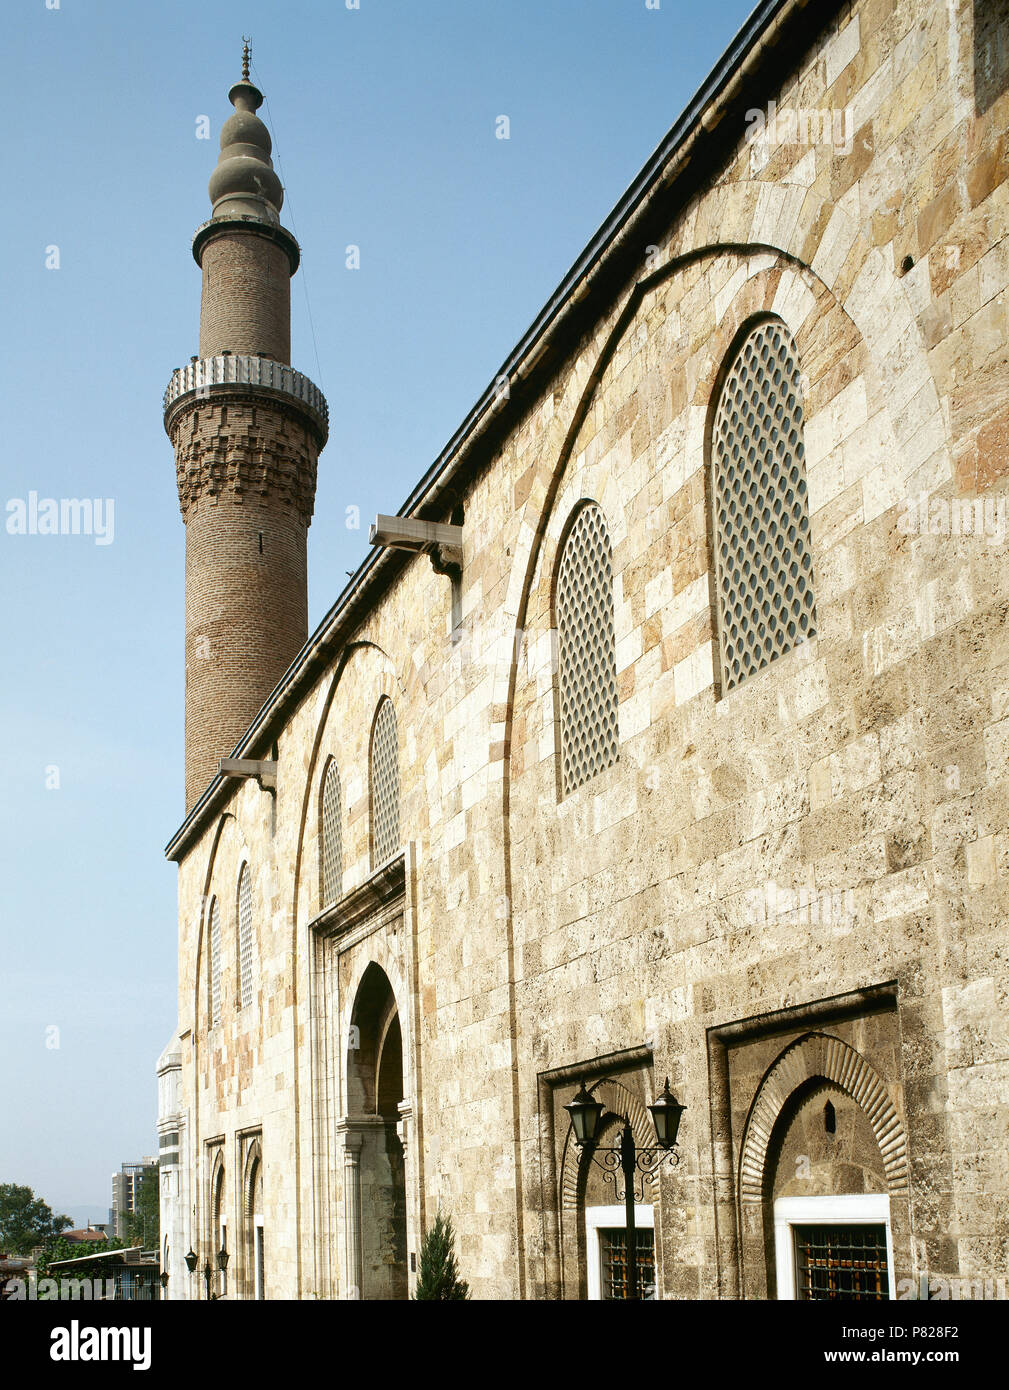 Turkey. Asia Minor. Bursa. Grand Mosque of Bursa (Ulu Camii). It was built in Seljuk style between 1396-1399. Its construction was ordered by the Ottoman Sultan Bayesid I. Facade and minaret. - Stock Image